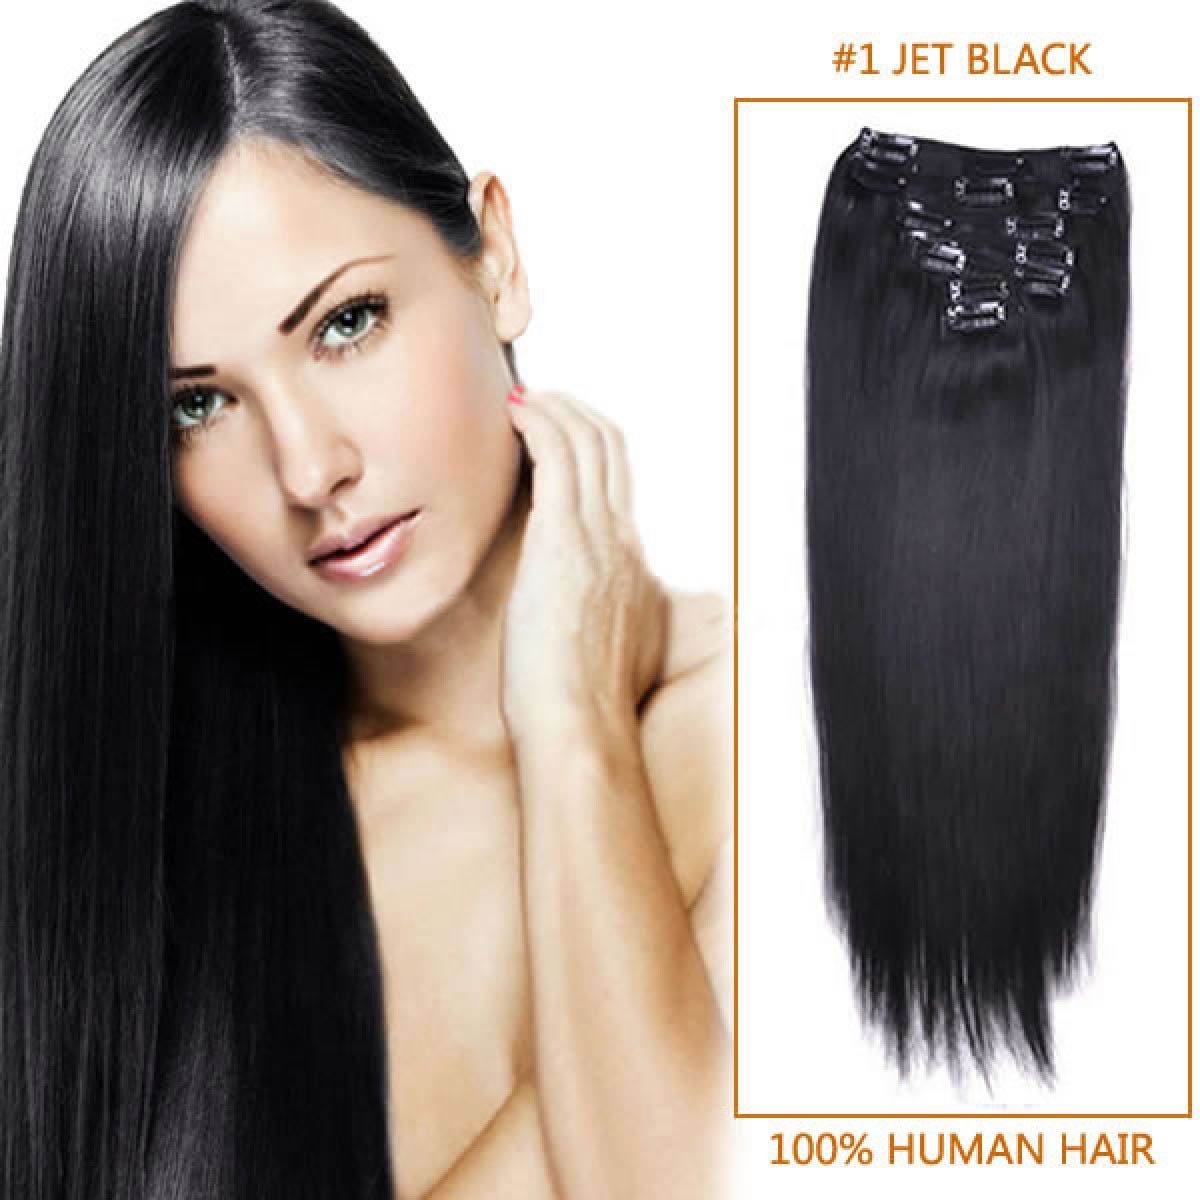 Inch 1 jet black clip in human hair extensions 11pcs 28 inch 1 jet black clip in human hair extensions 11pcs pmusecretfo Image collections